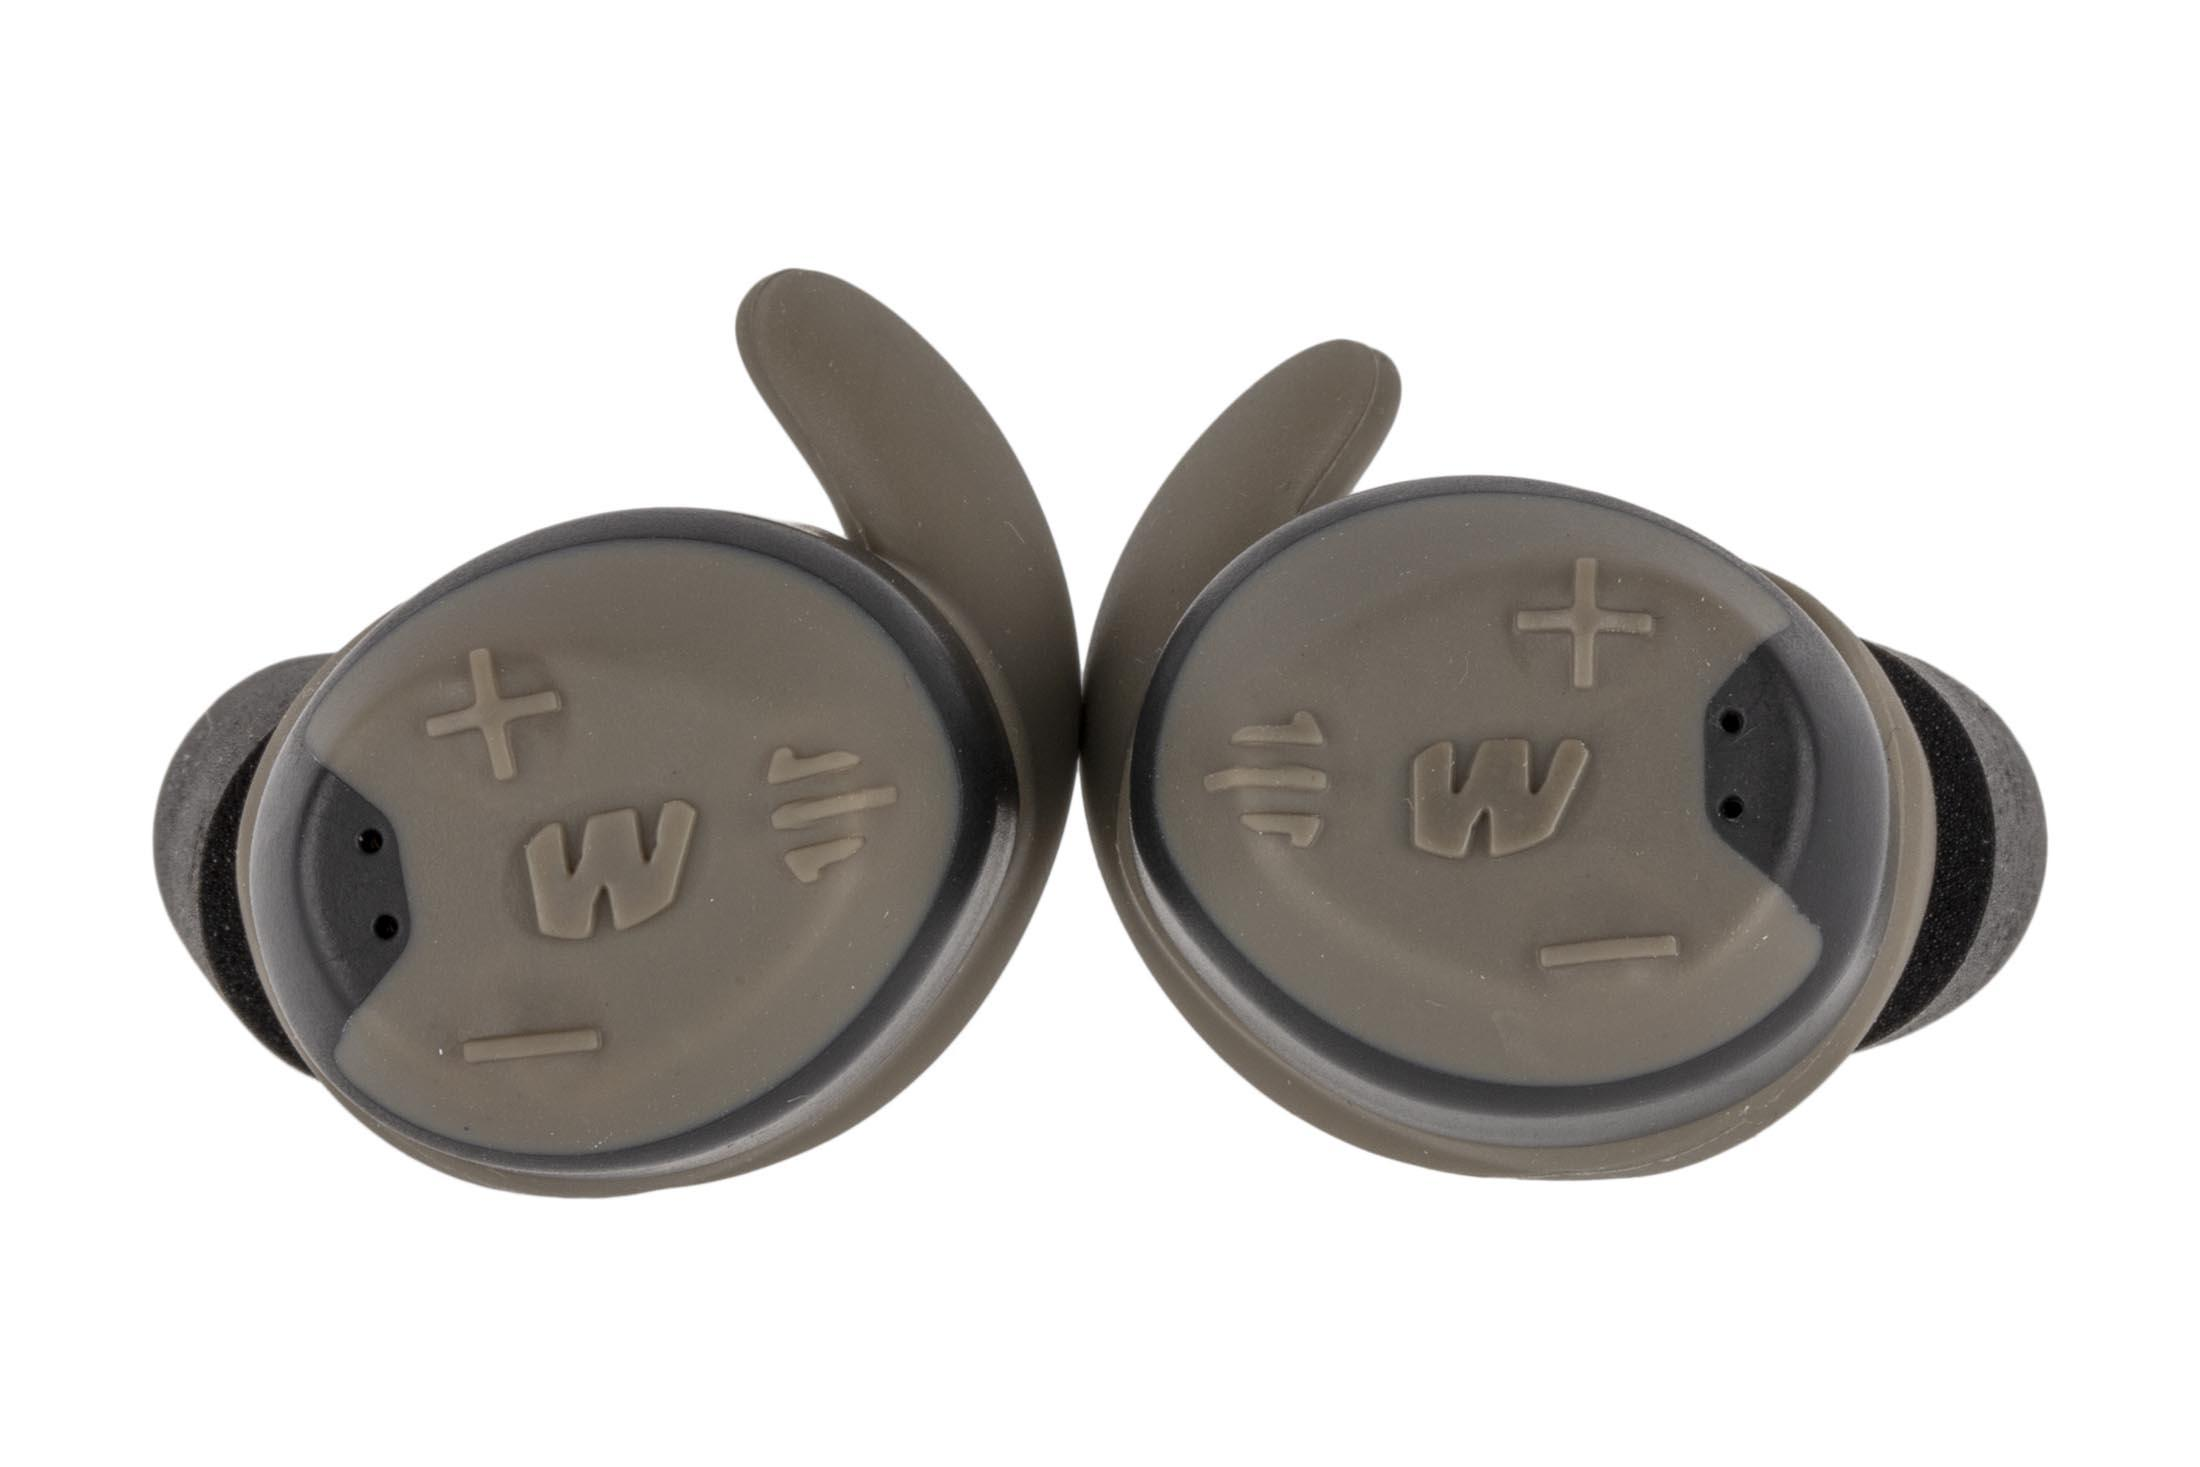 The walker's rechargeable bluetooth electronic hearing protection have a flat dark earth color